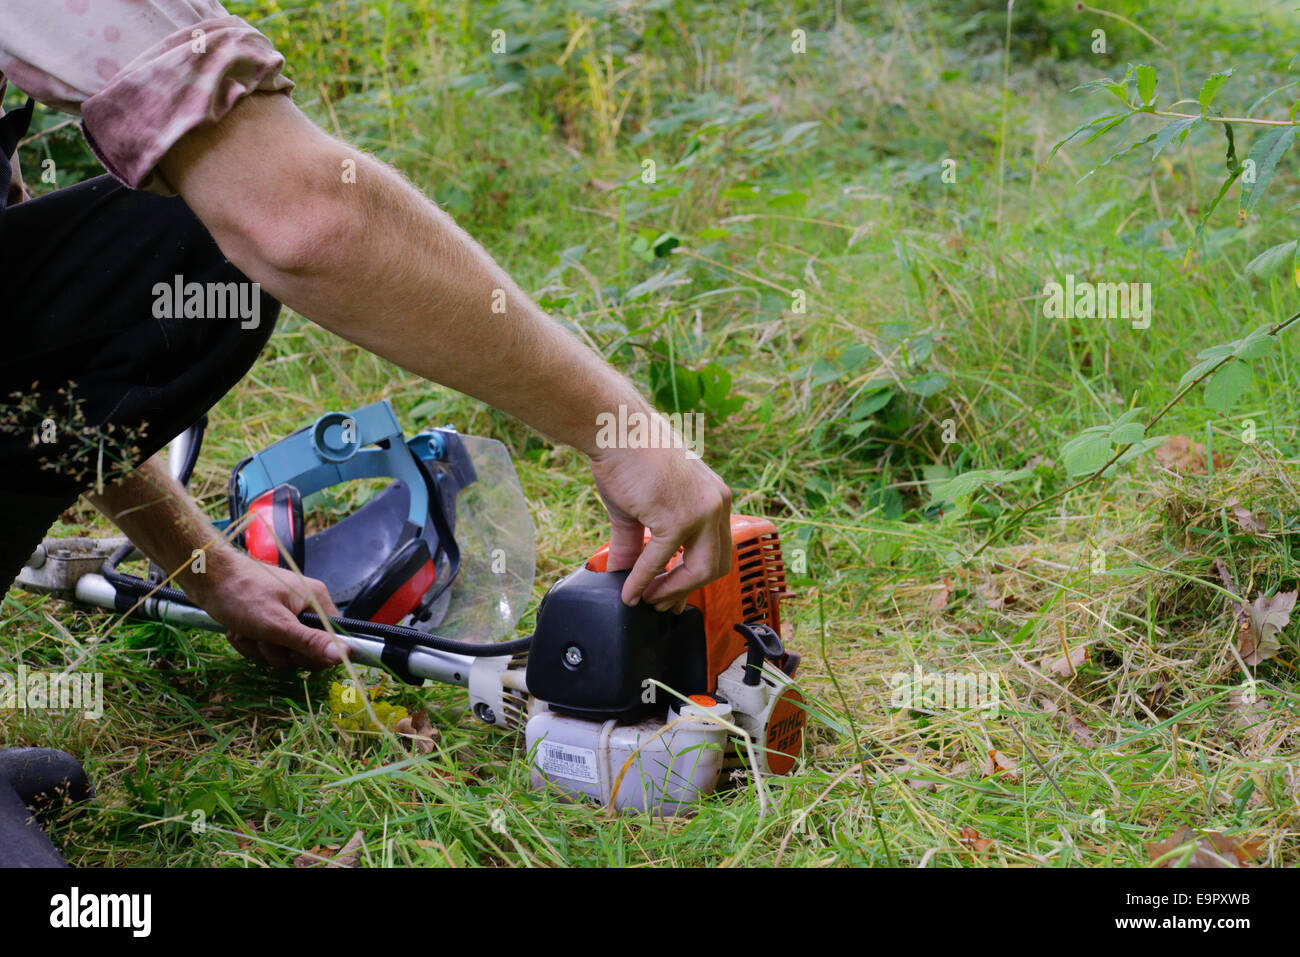 Man priming a 2 stroke petrol engine attached to a strimmer or brushcutter, Wales, UK. - Stock Image